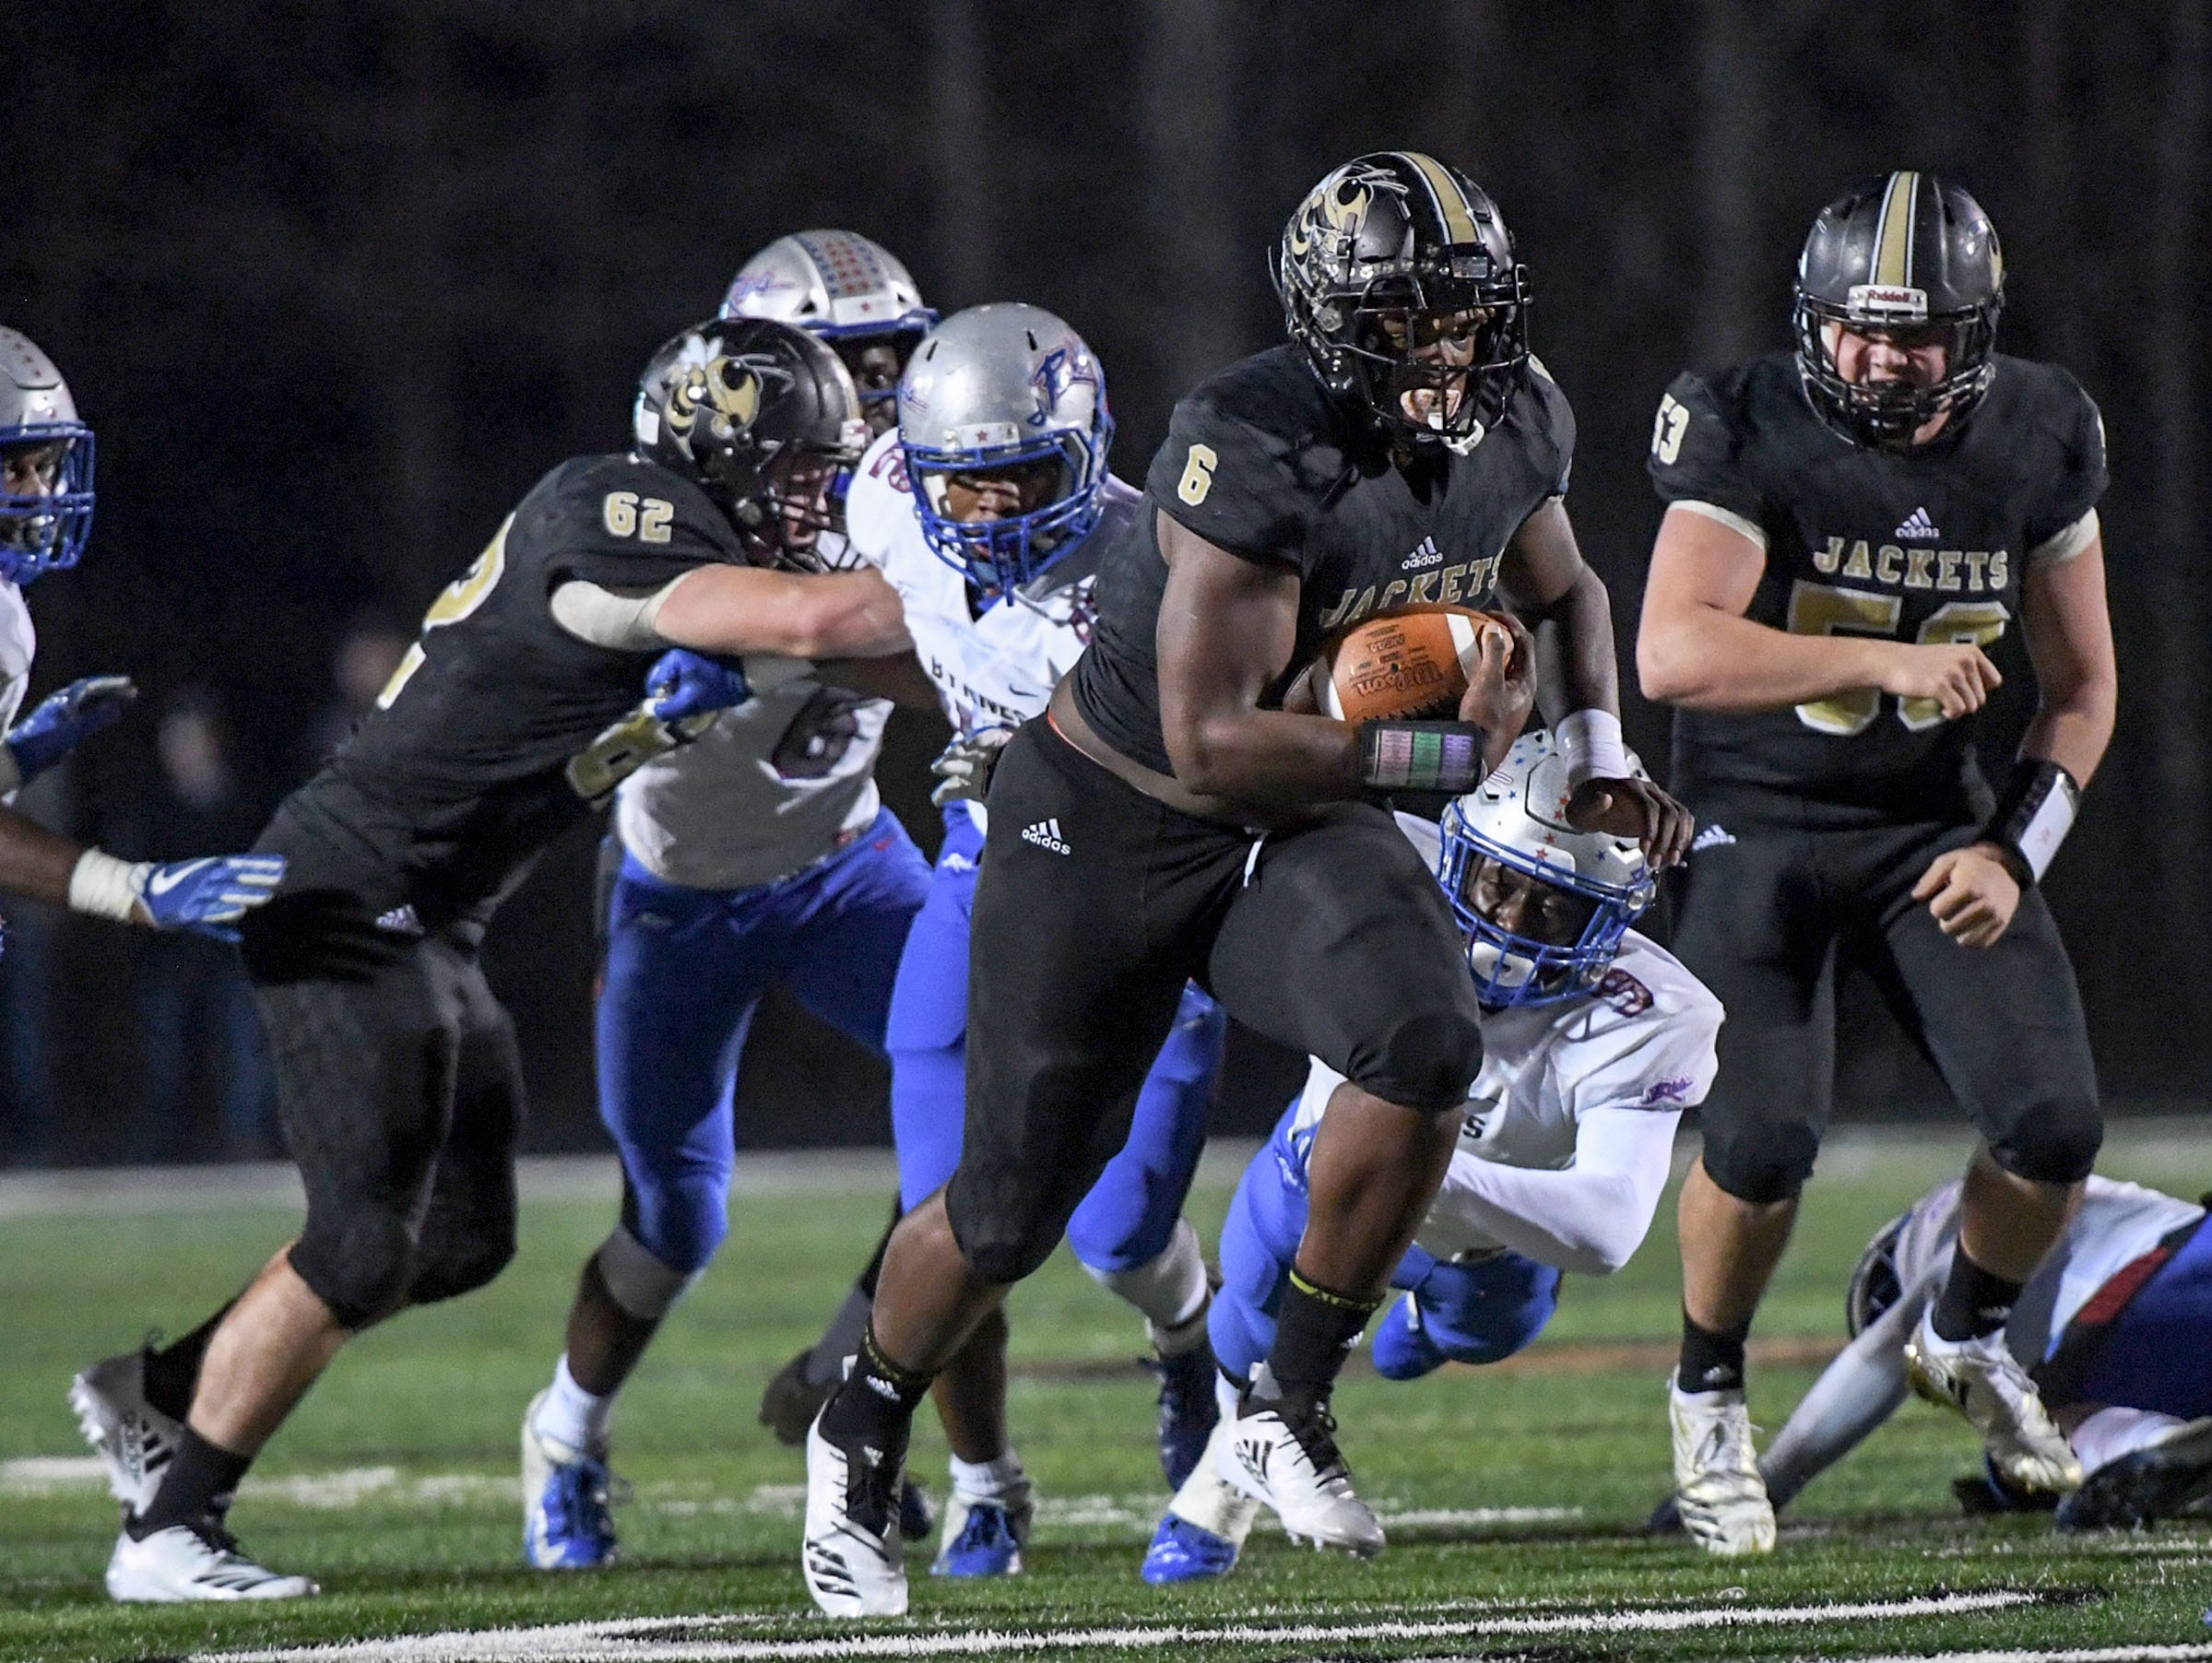 TL Hanna senior Zacch Pickens (6) runs near linemen TL Hanna senior Mac Malone (62) and TL Hanna junior Raymond Fretwell (53) during the first quarter of the Class AAAAA state playoffs against Byrnes High School at TL Hanna High School in Anderson on Friday, November 30, 2018.